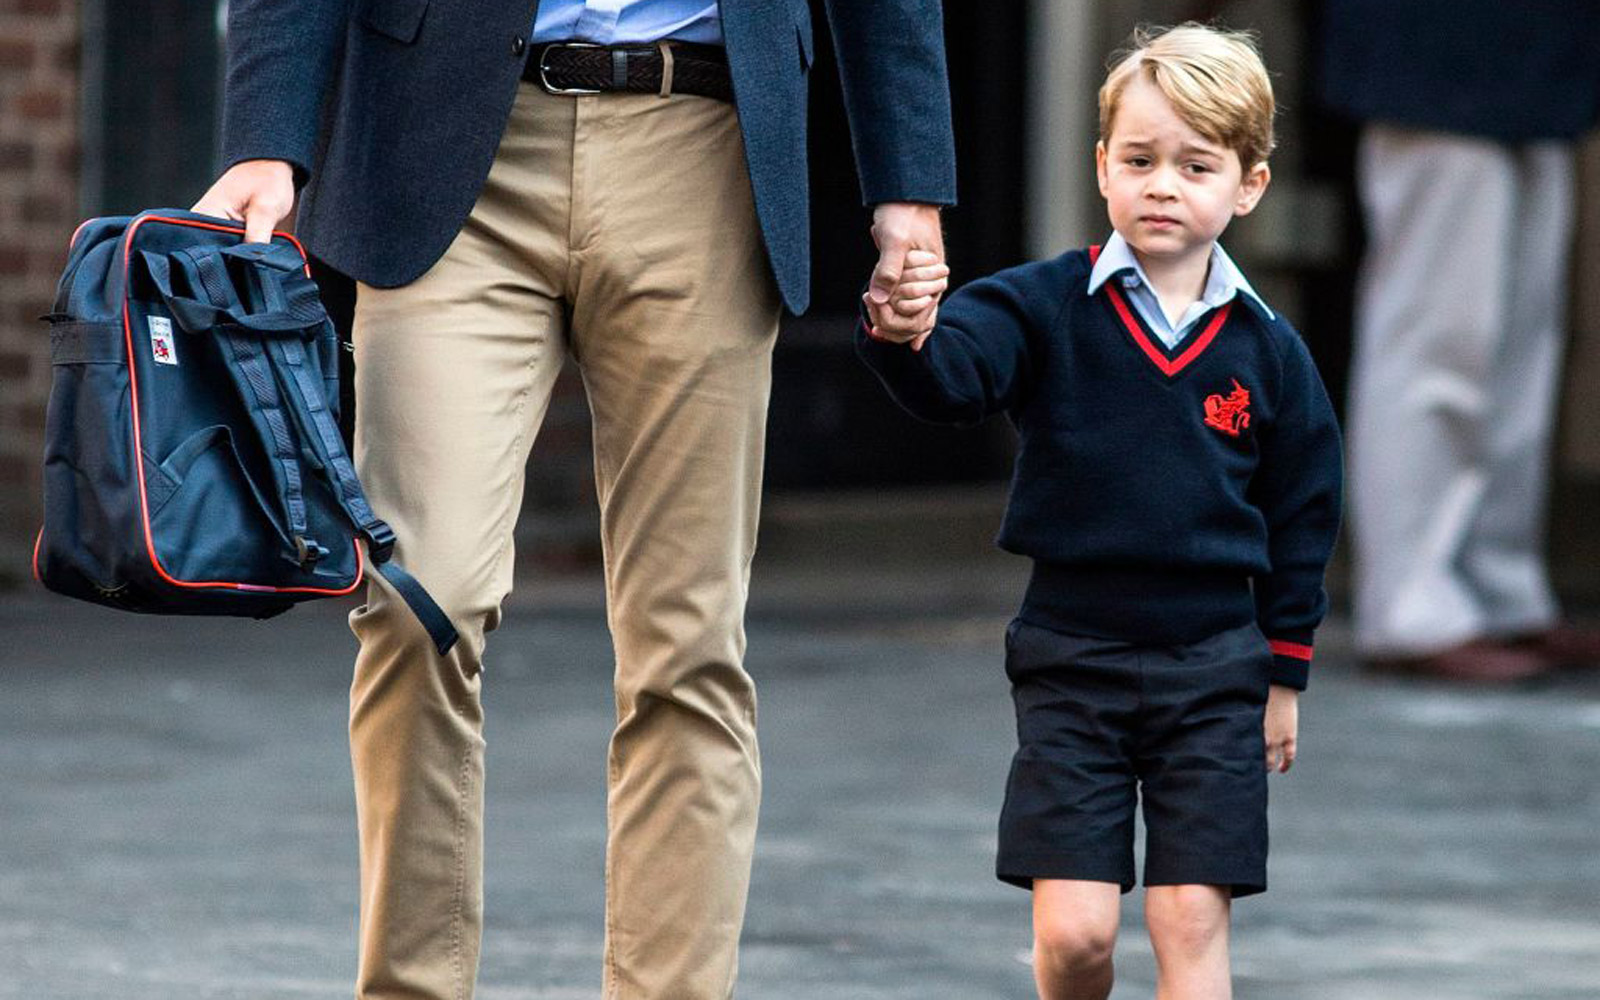 Britain's Prince George accompanied by Britain's Prince William, Duke of Cambridge arrives for his first day of school at Thomas's school